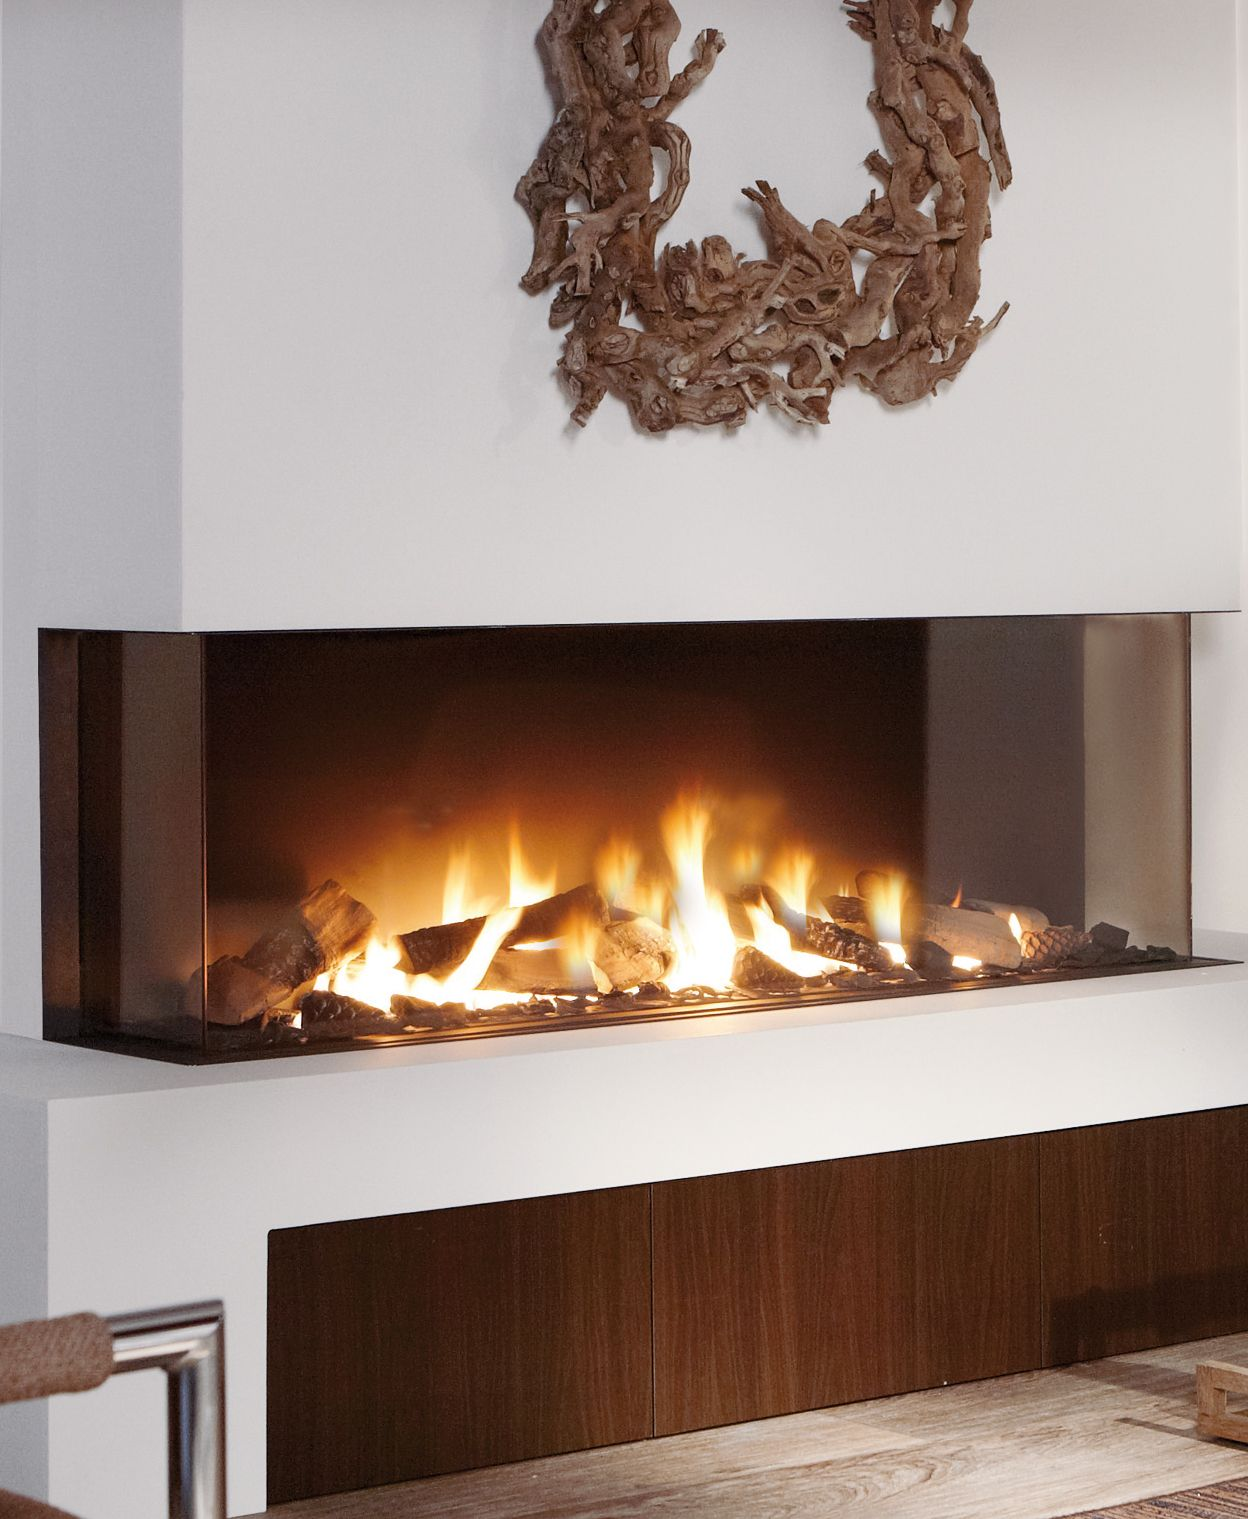 The Trisore 140 By Elements4 And Distributed By European Home Is A 3 Sided Or Bay Style Fireplace It Vent Free Gas Fireplace Natural Gas Fireplace Fireplace